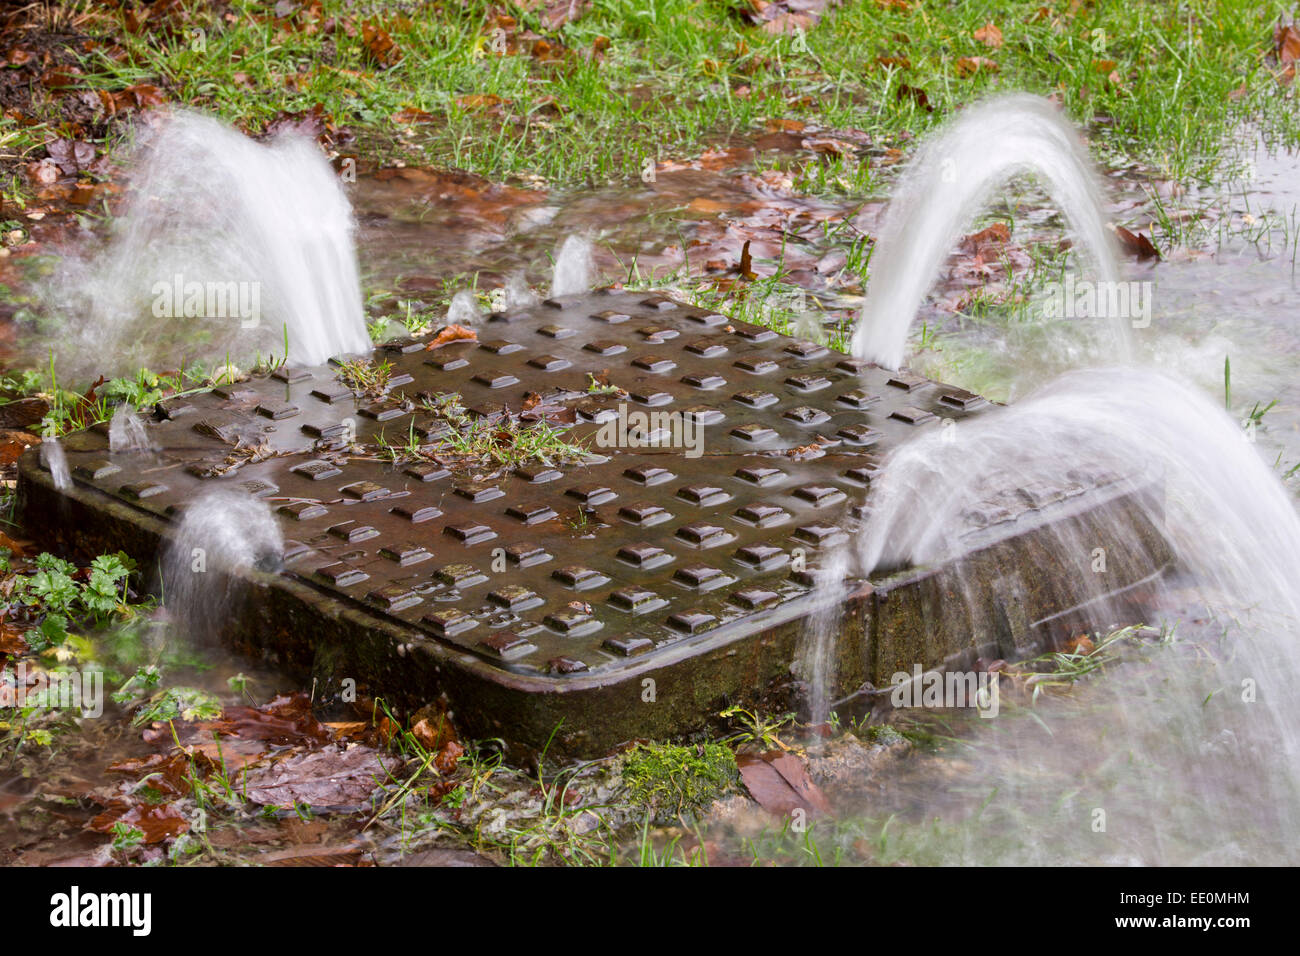 A man hole cover being pushed up under the force of water pressure during flooding in Ambleside, Lake District, - Stock Image